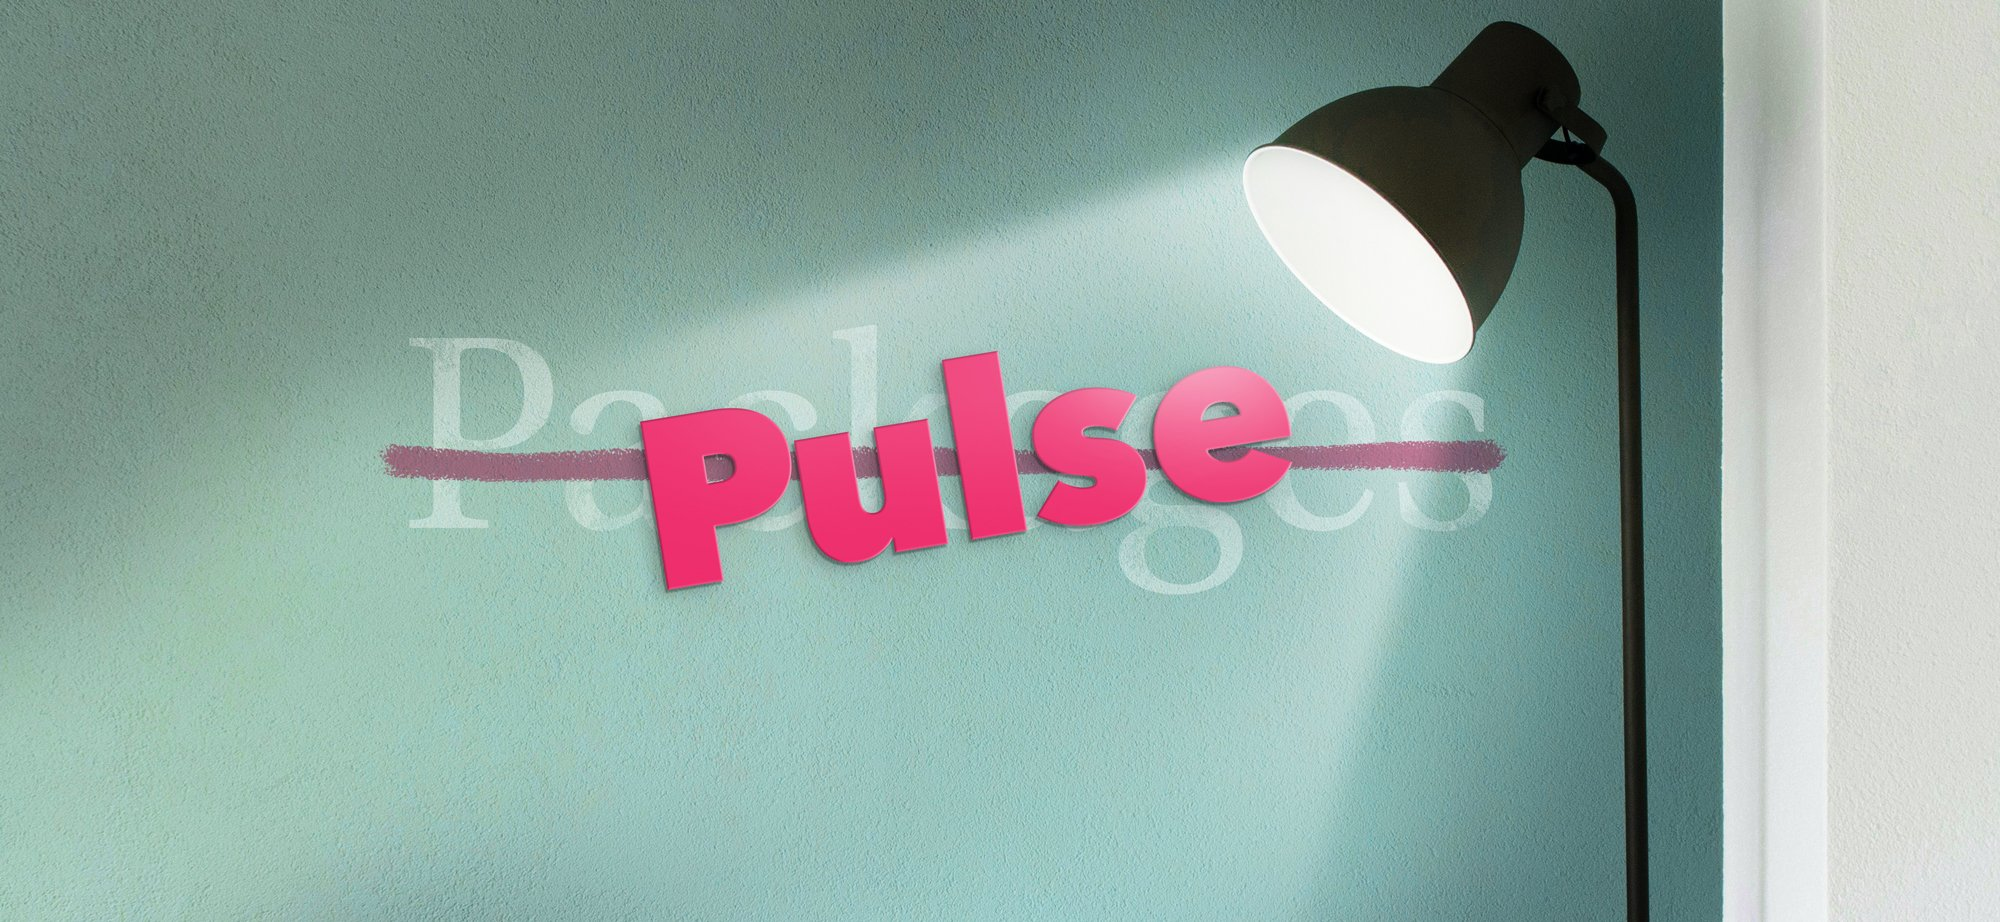 Profgram-laung-and-Pulses02